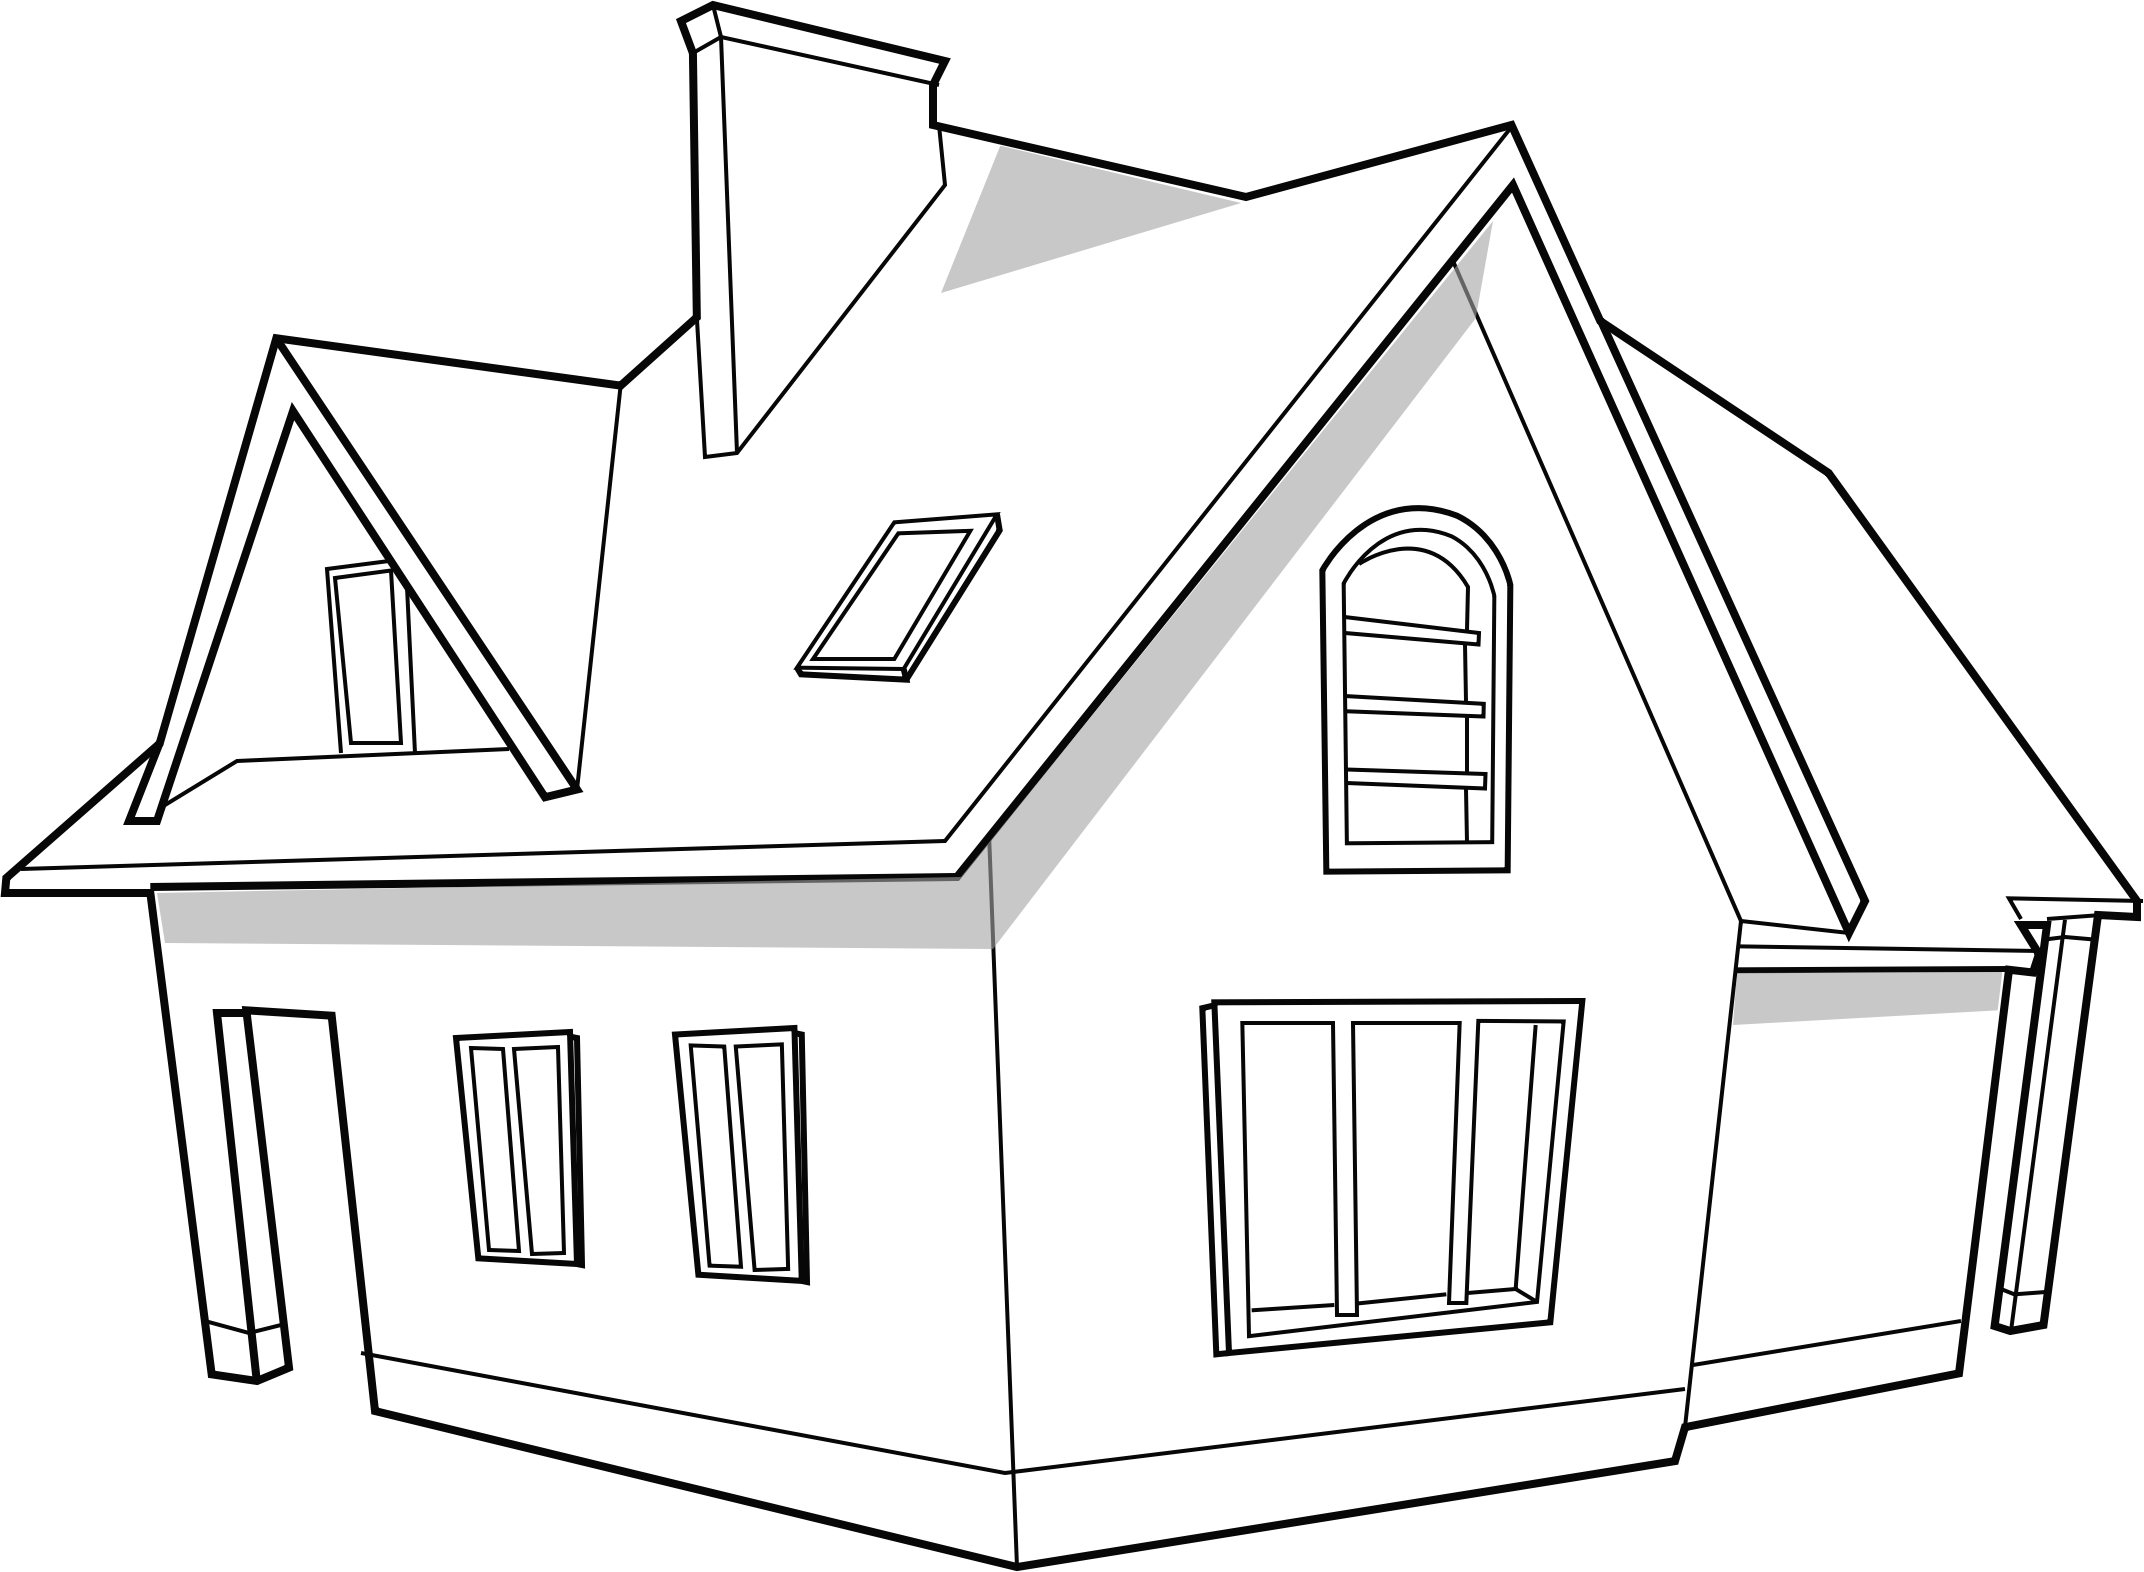 Line Art House Png : Clipart modern house svg image for videoscribe